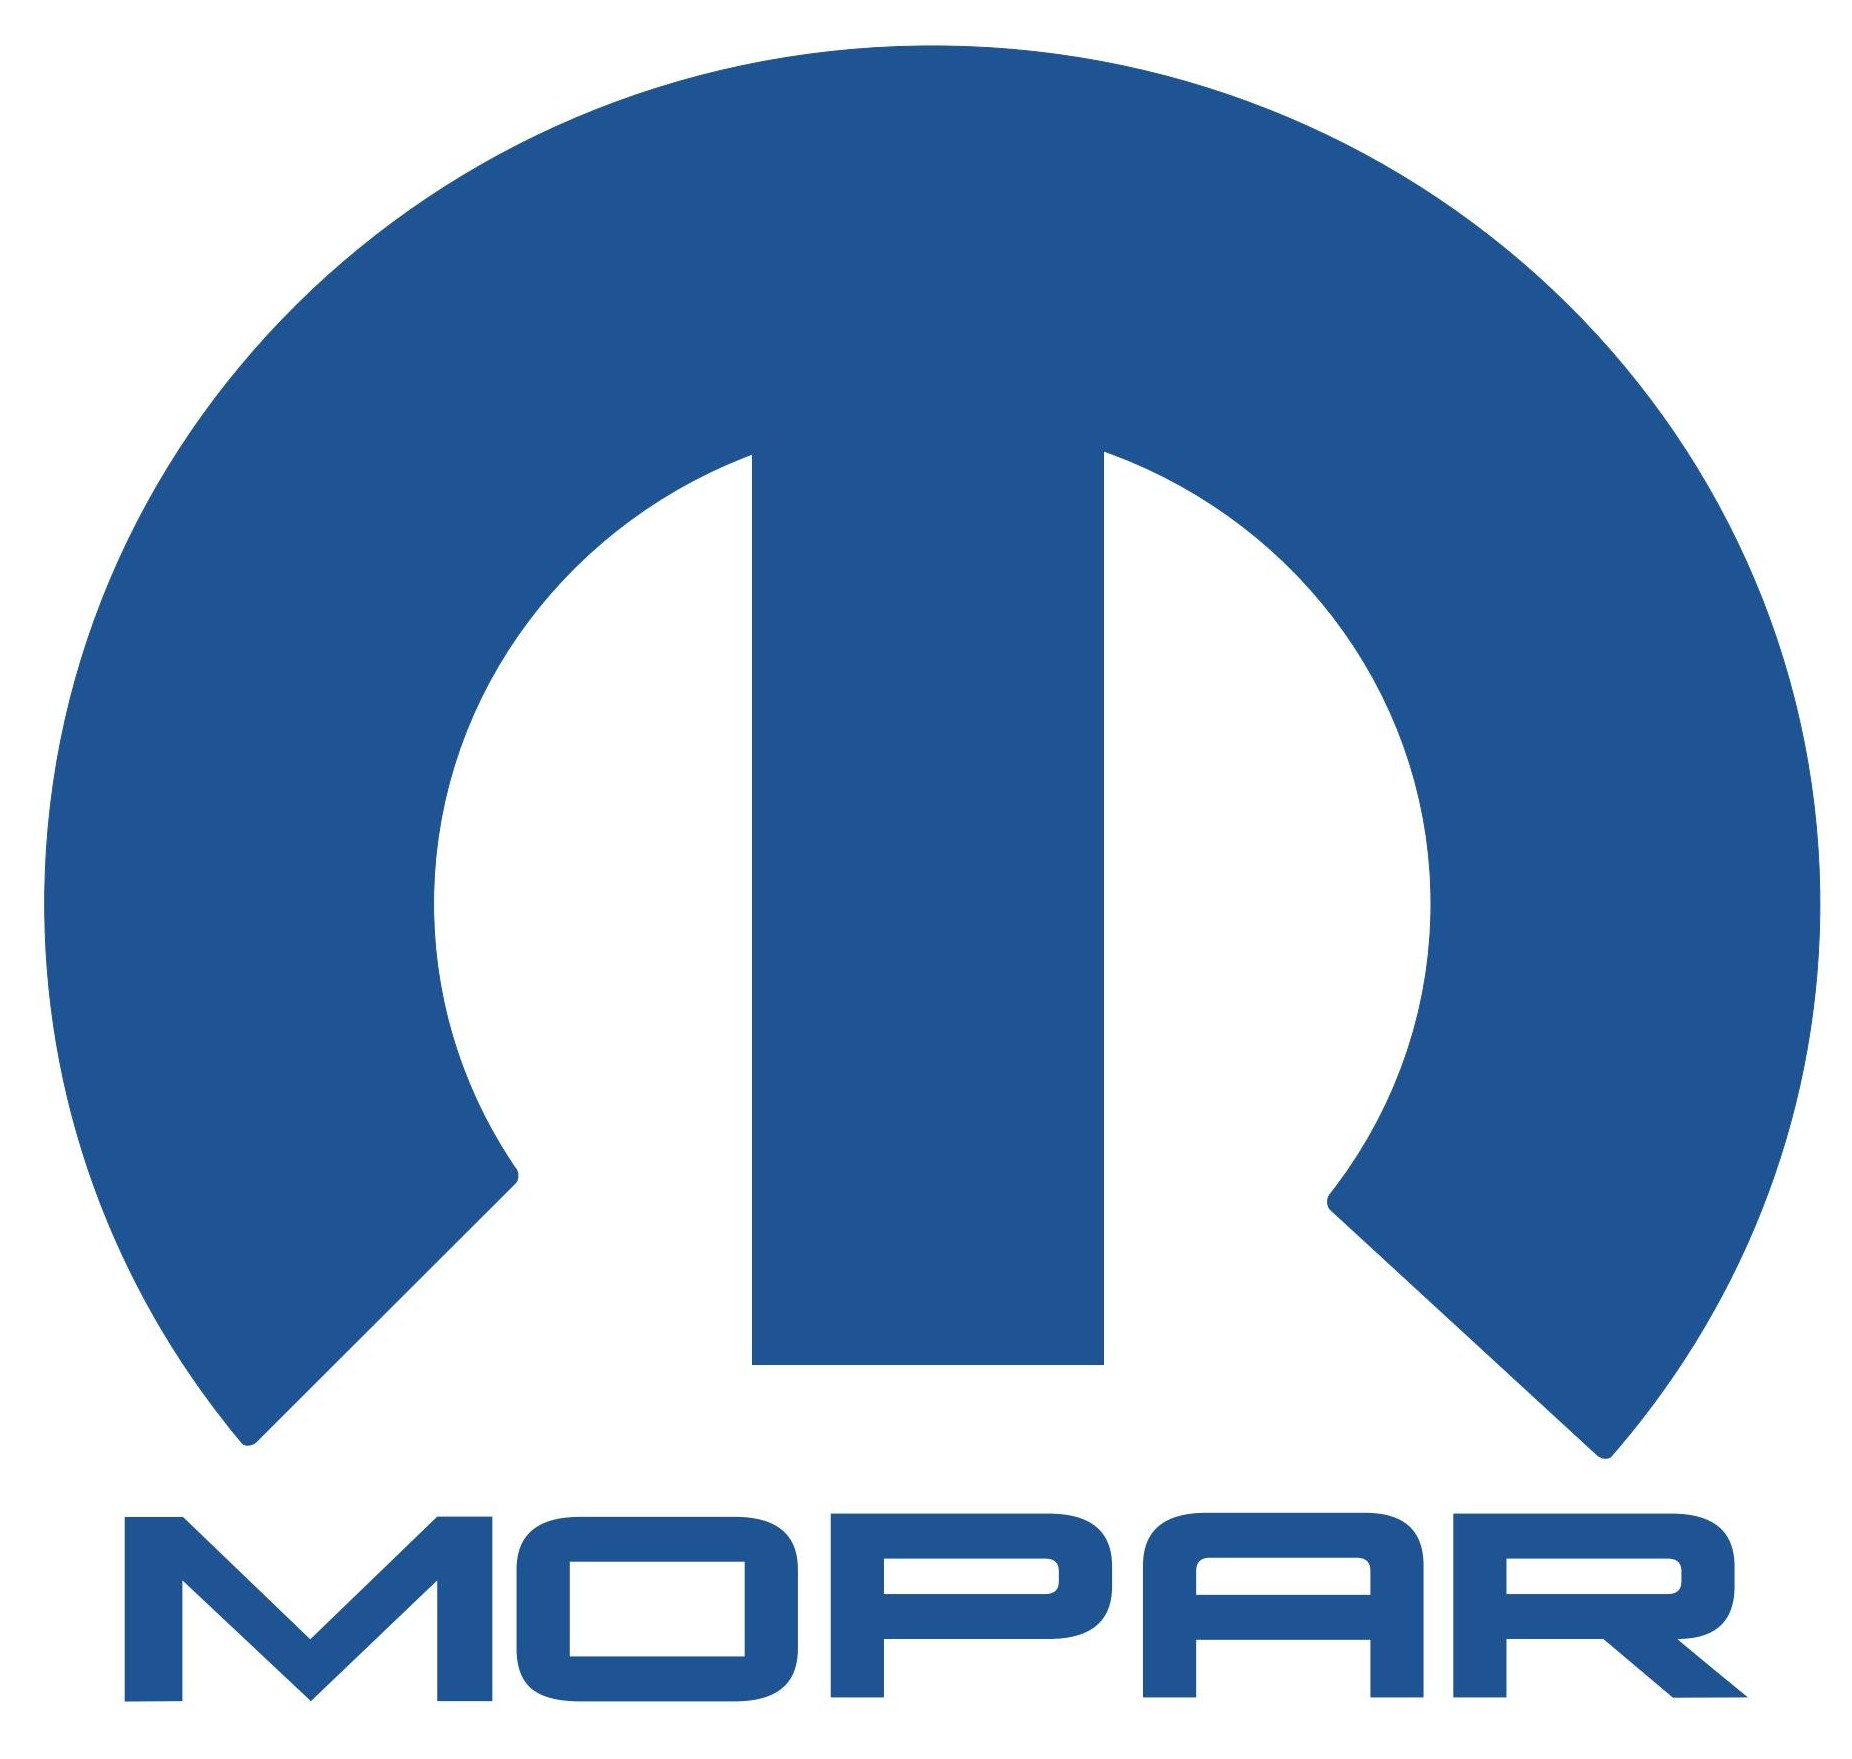 Mopar clipart #7, Download drawings